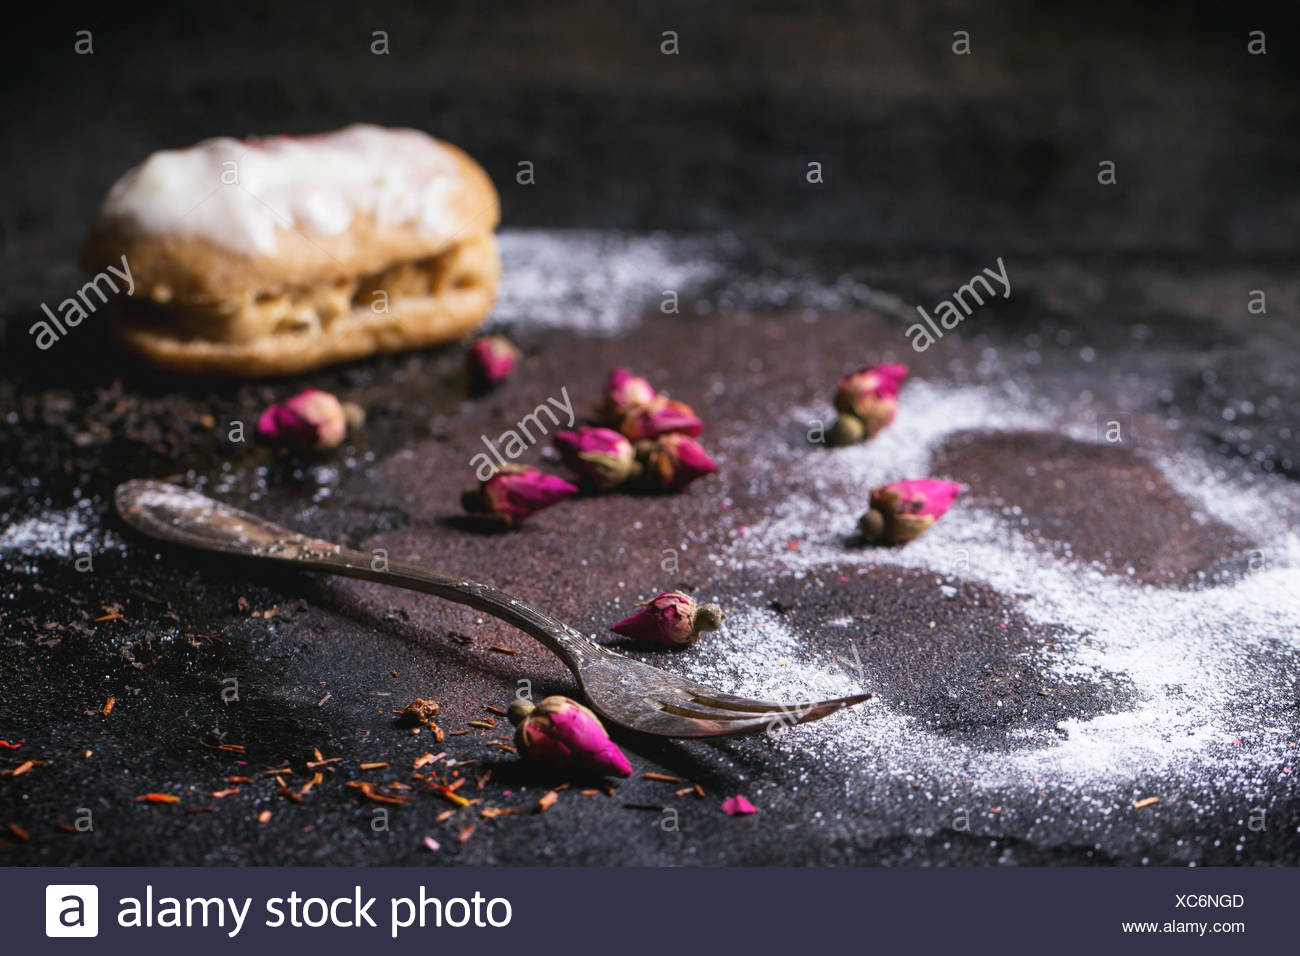 Eclairs and trace of the eclair in sugar powder, with dry tea rose buds and vintage cutlery over dark background - Stock Image